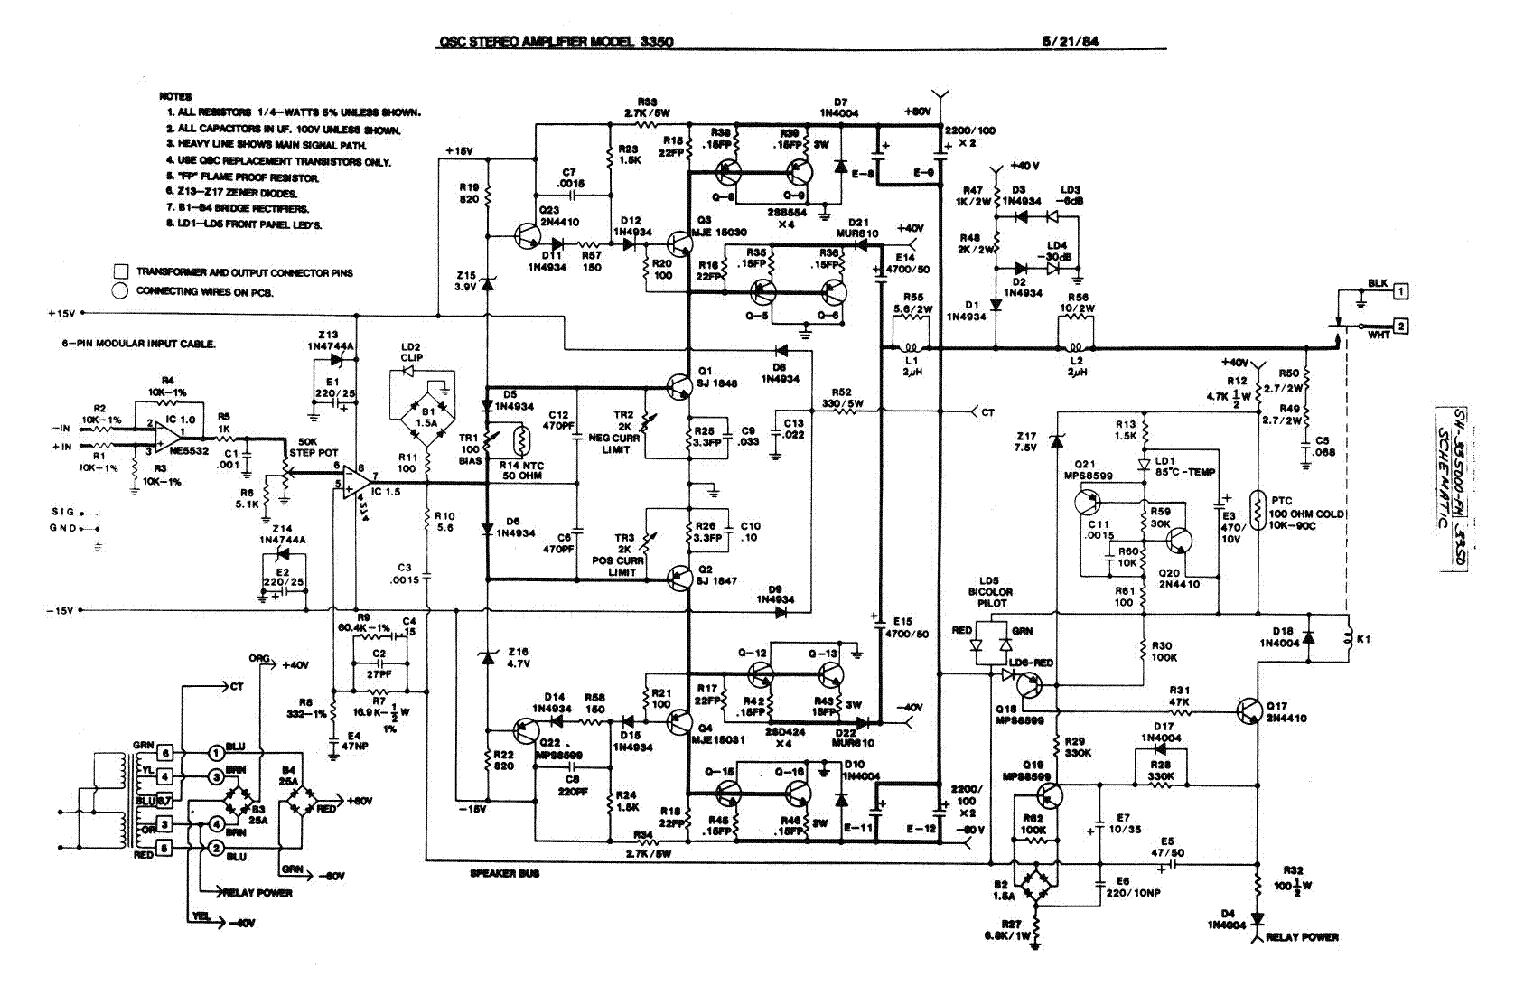 Qsc Usa400 Sch Service Manual Free Download Schematics Eeprom Repair Info For Electronics